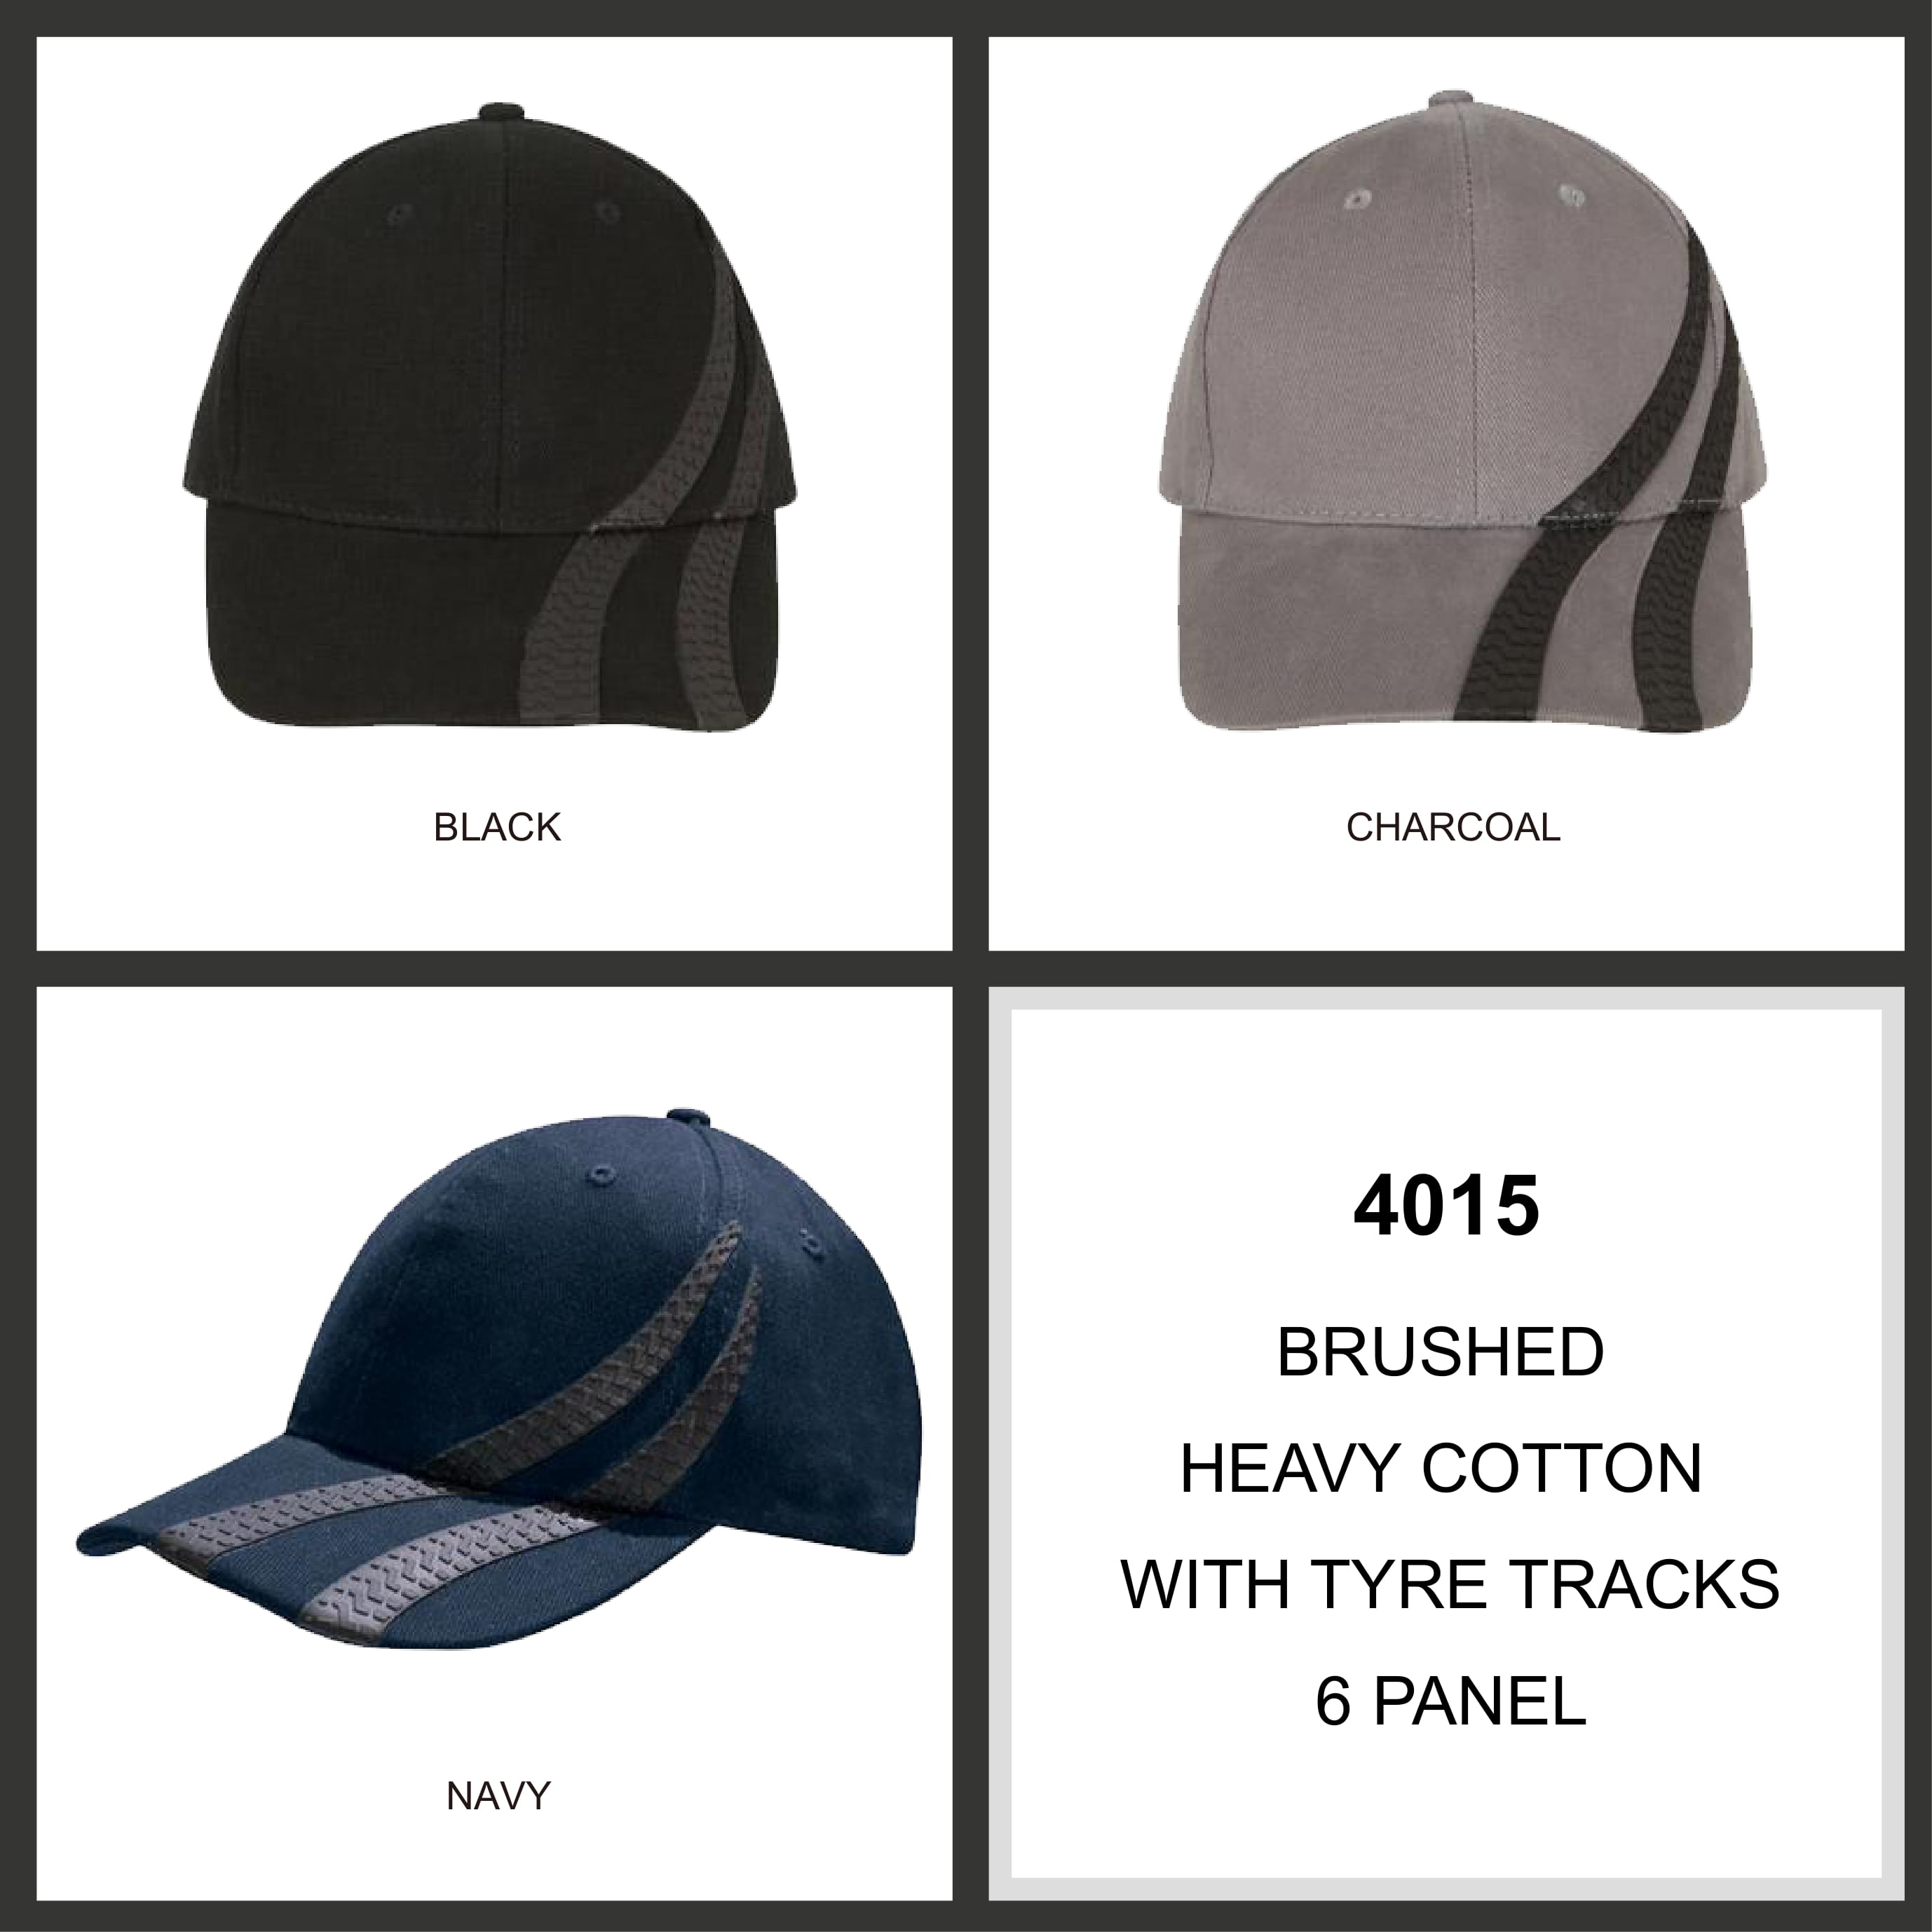 Brushed Heavy Cotton with Tyre Tracks (4015) 2 | | Promotion Wear